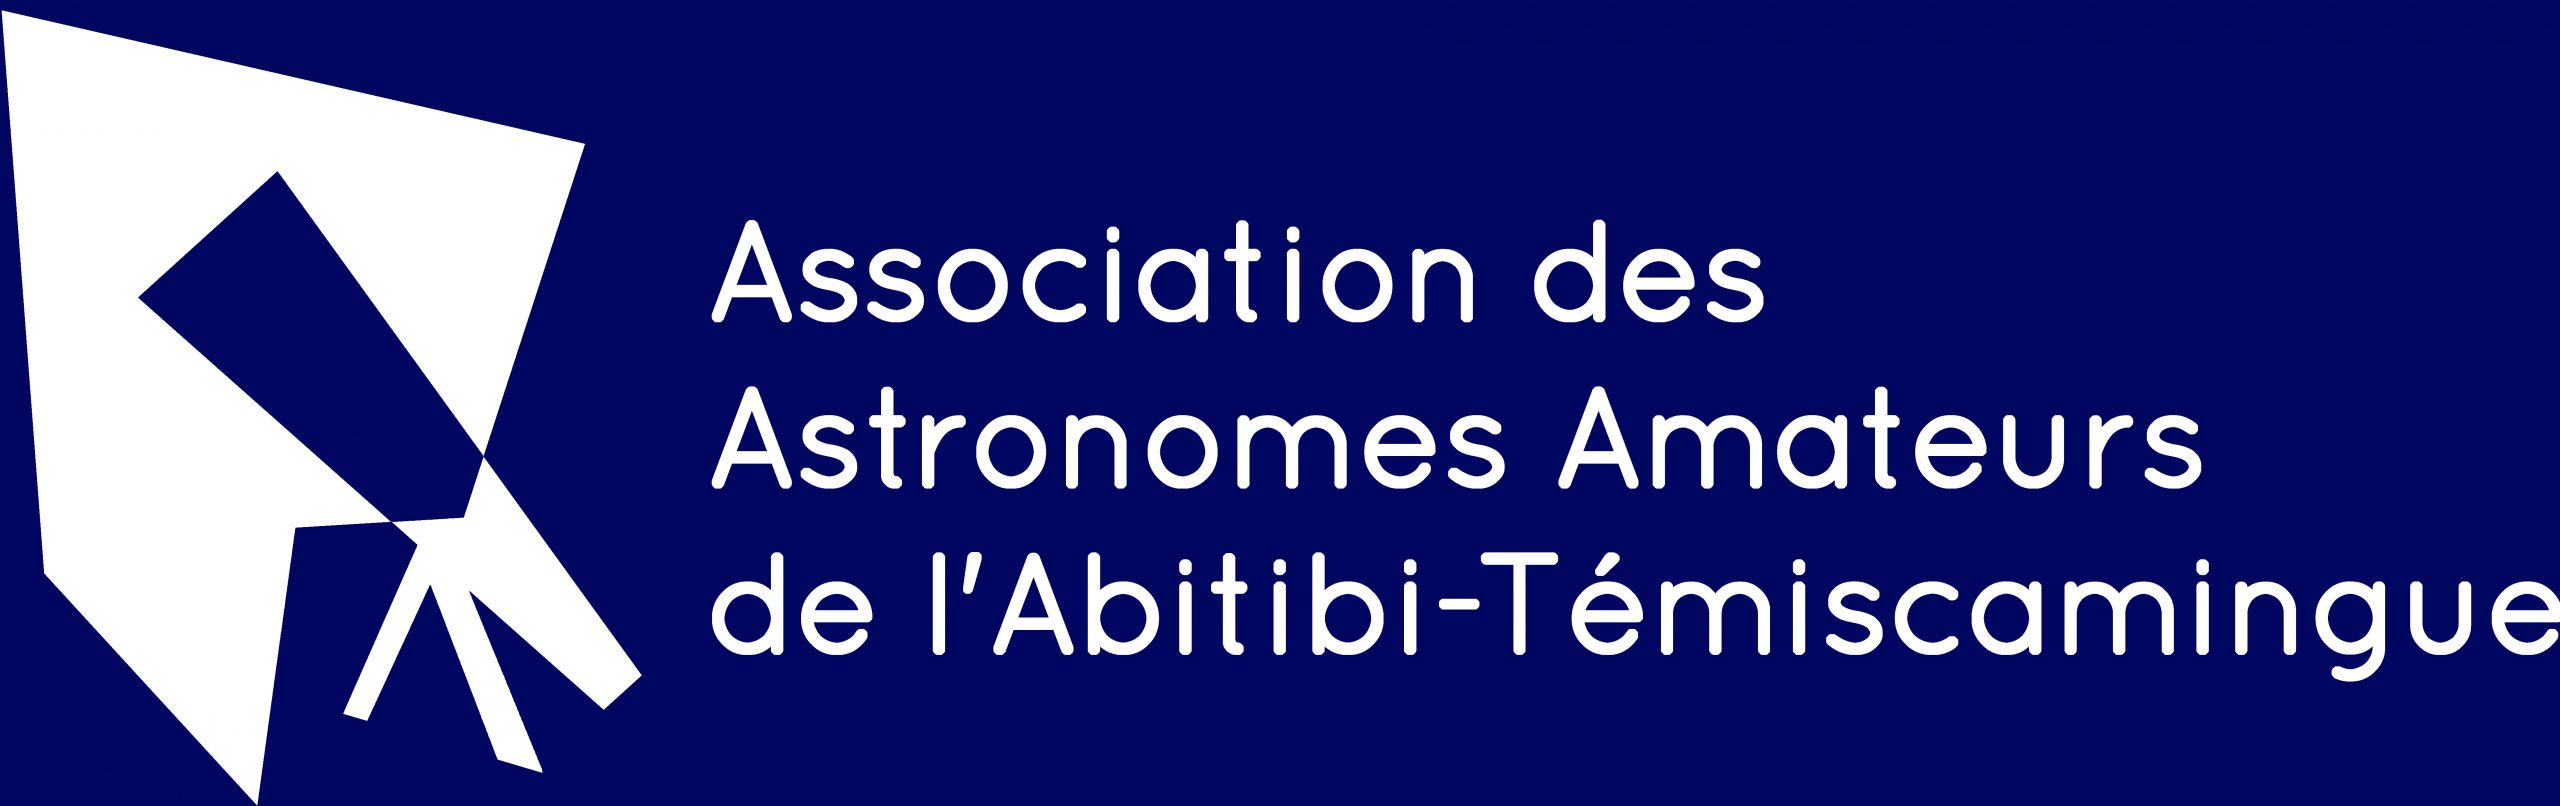 Association des Astronomes Amateurs de l'Abitibi-Témiscamingue